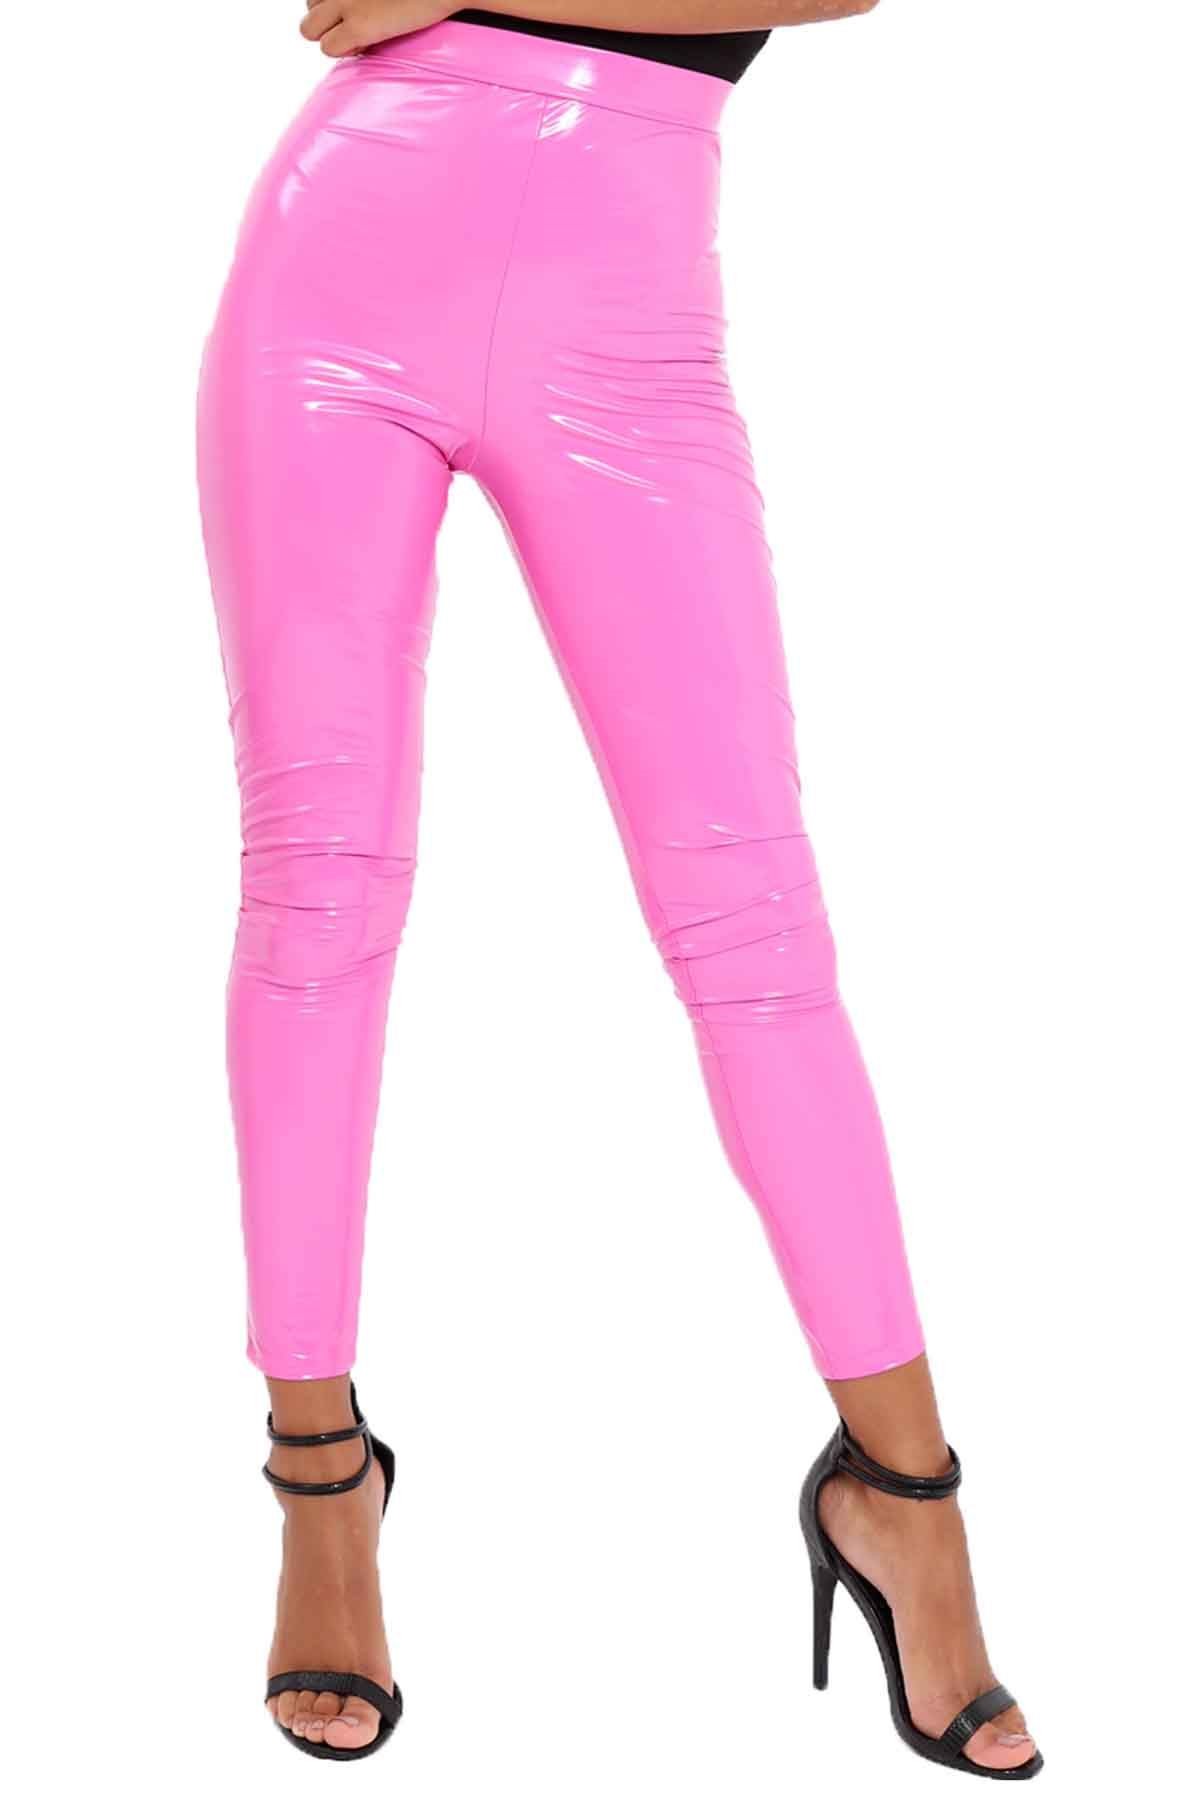 1ca1d3feda New Women's PVC Vinyl Neon Fashion Trendy Leggings Pants UK 8-26 | eBay